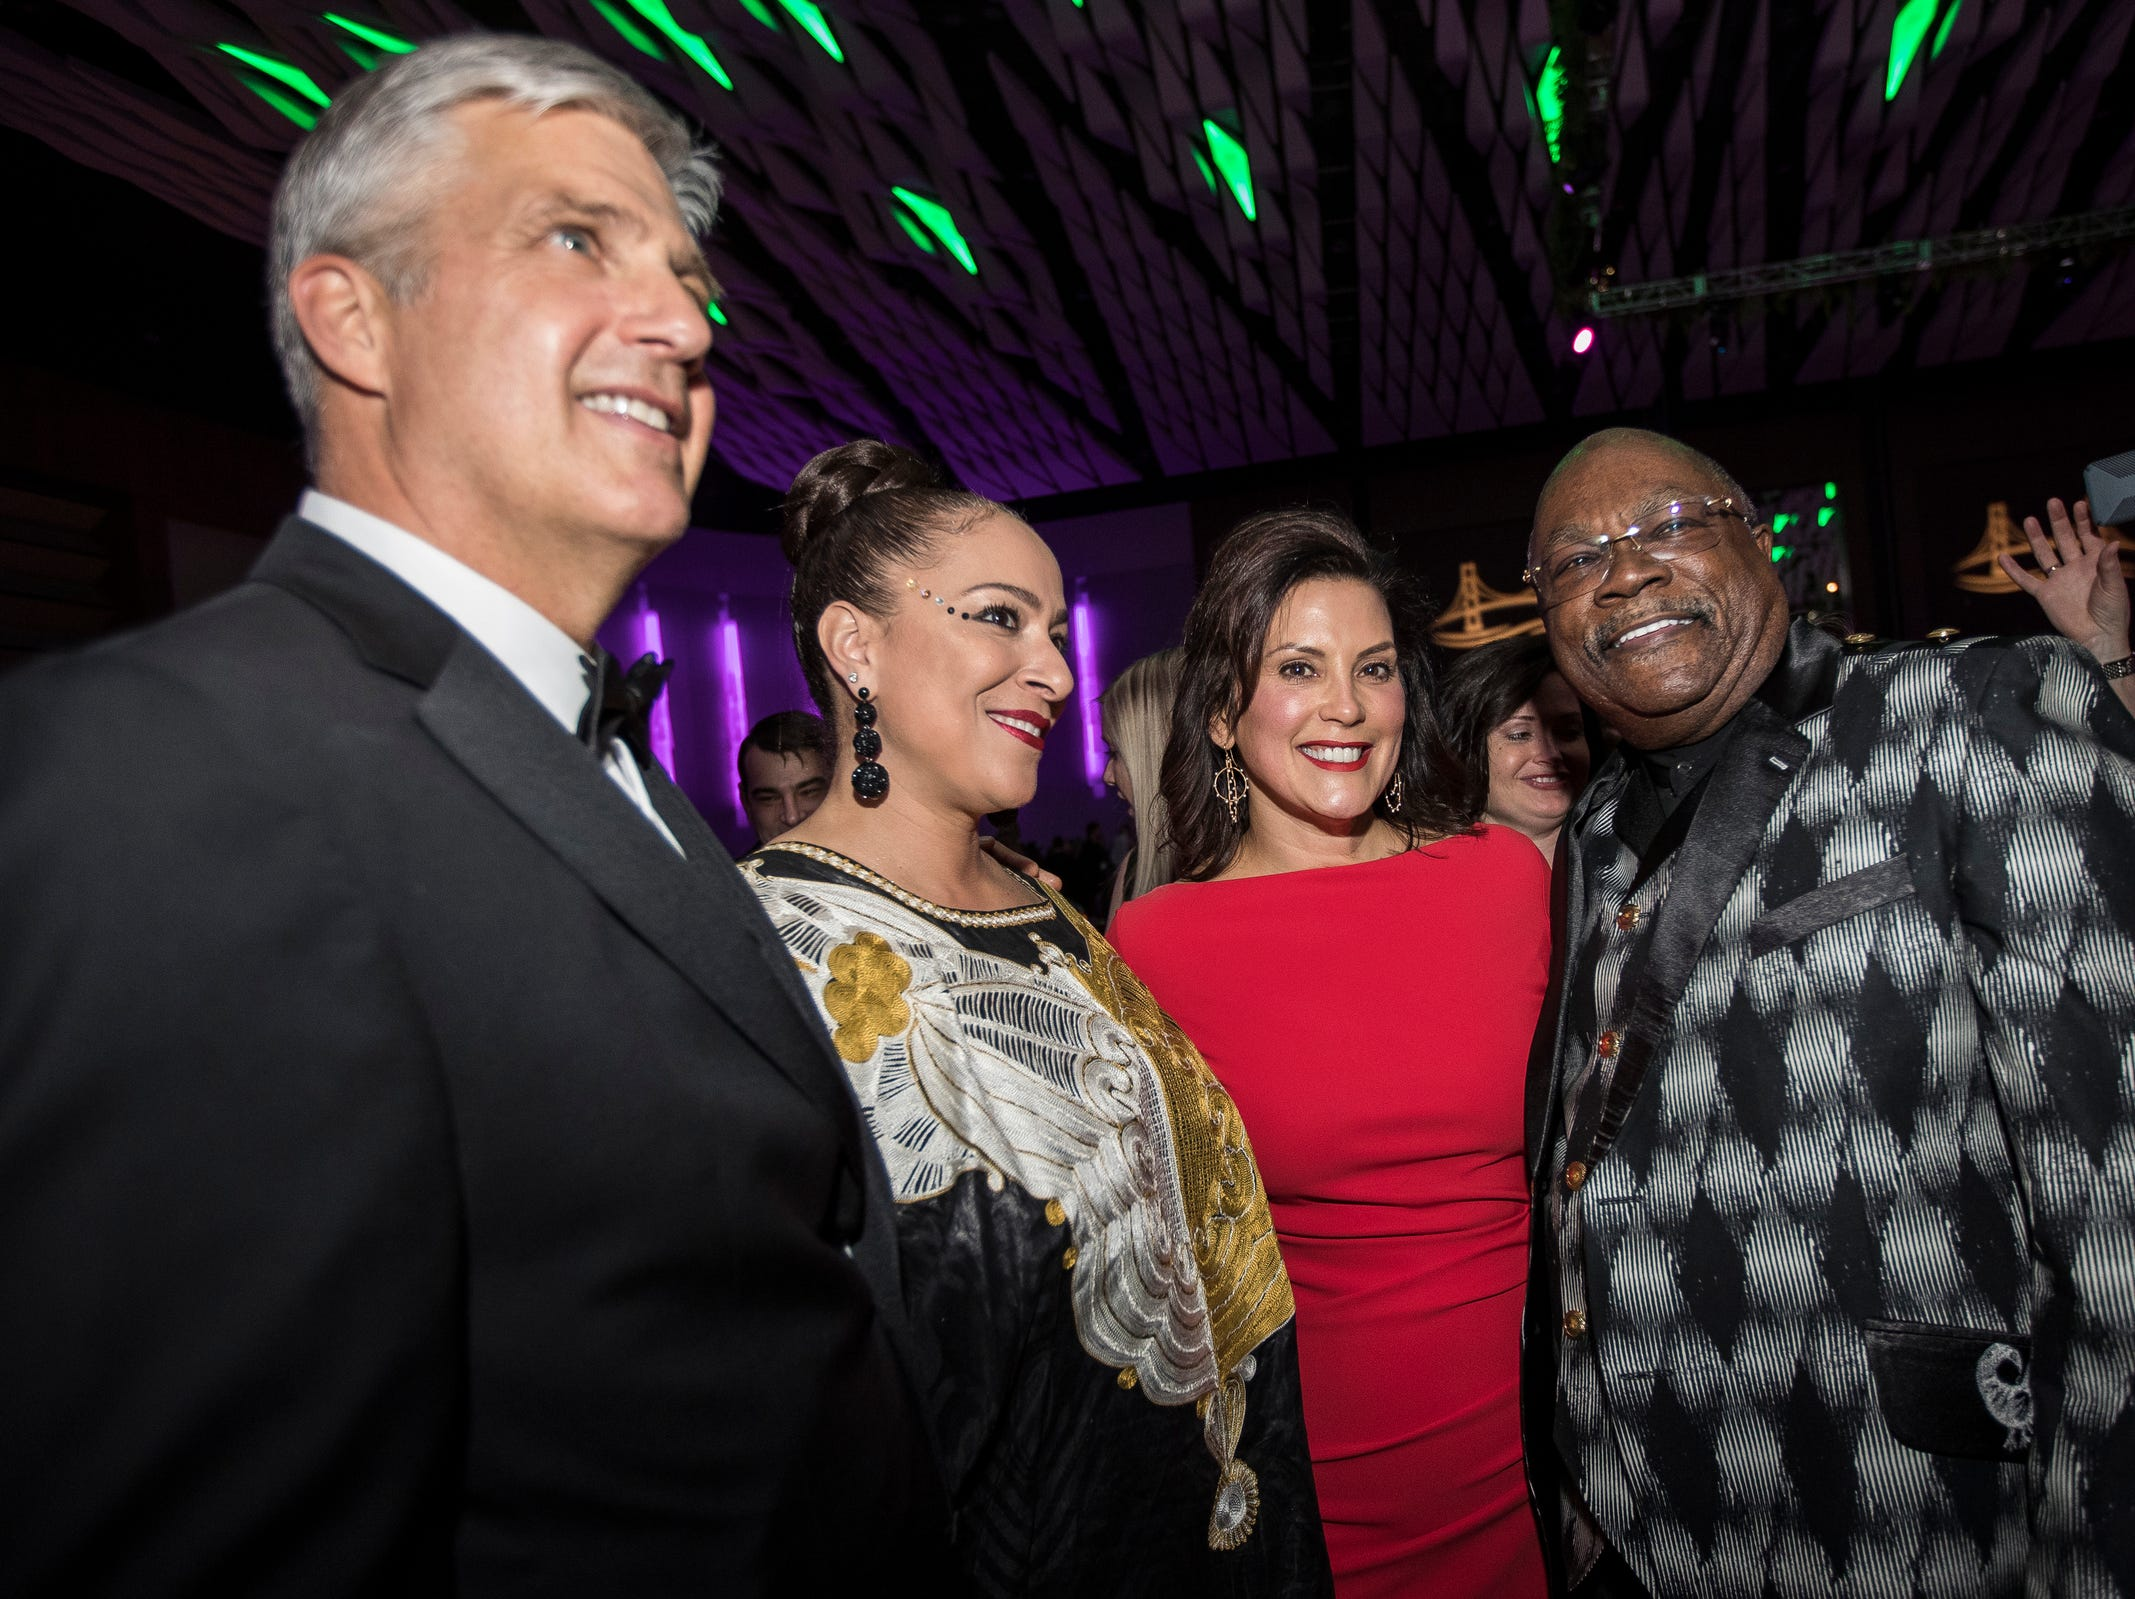 Governor Gretchen Whitmer, center right, and her husband Marc Mallory, far left, pose for a photo with Rev. Wendell Anthony, far right, and his wife Monica Anthony during the inaugural ball at Cobo Center in Detroit on Tuesday, Jan. 1, 2019.